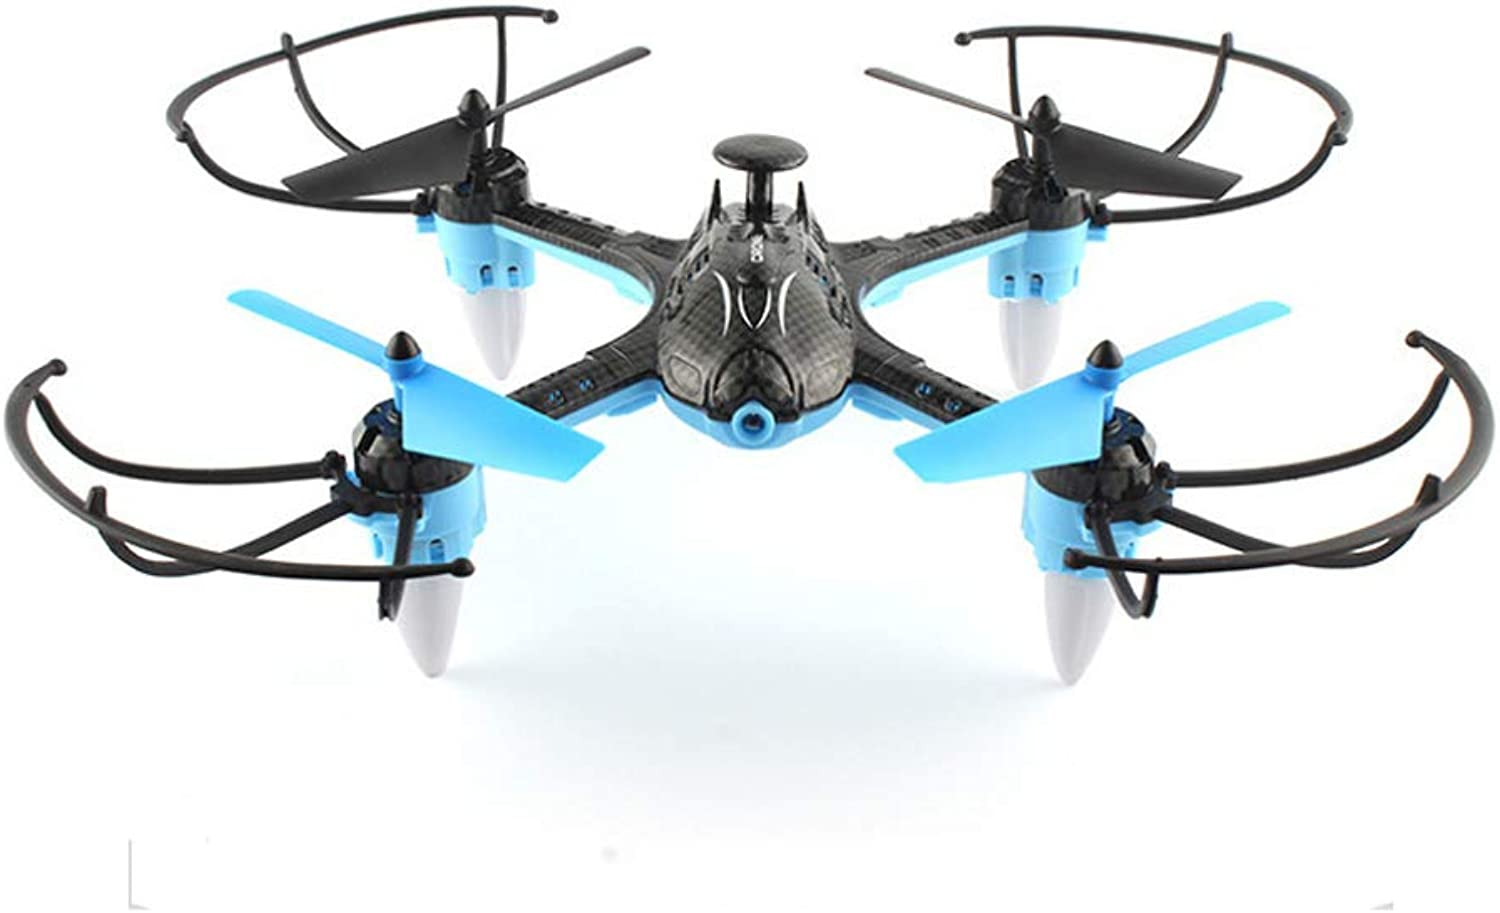 YXLONG Toy Aerial Drone, Fouraxis Aircraft, Remote Control Helicopter, Onebutton Return, Headless Mode